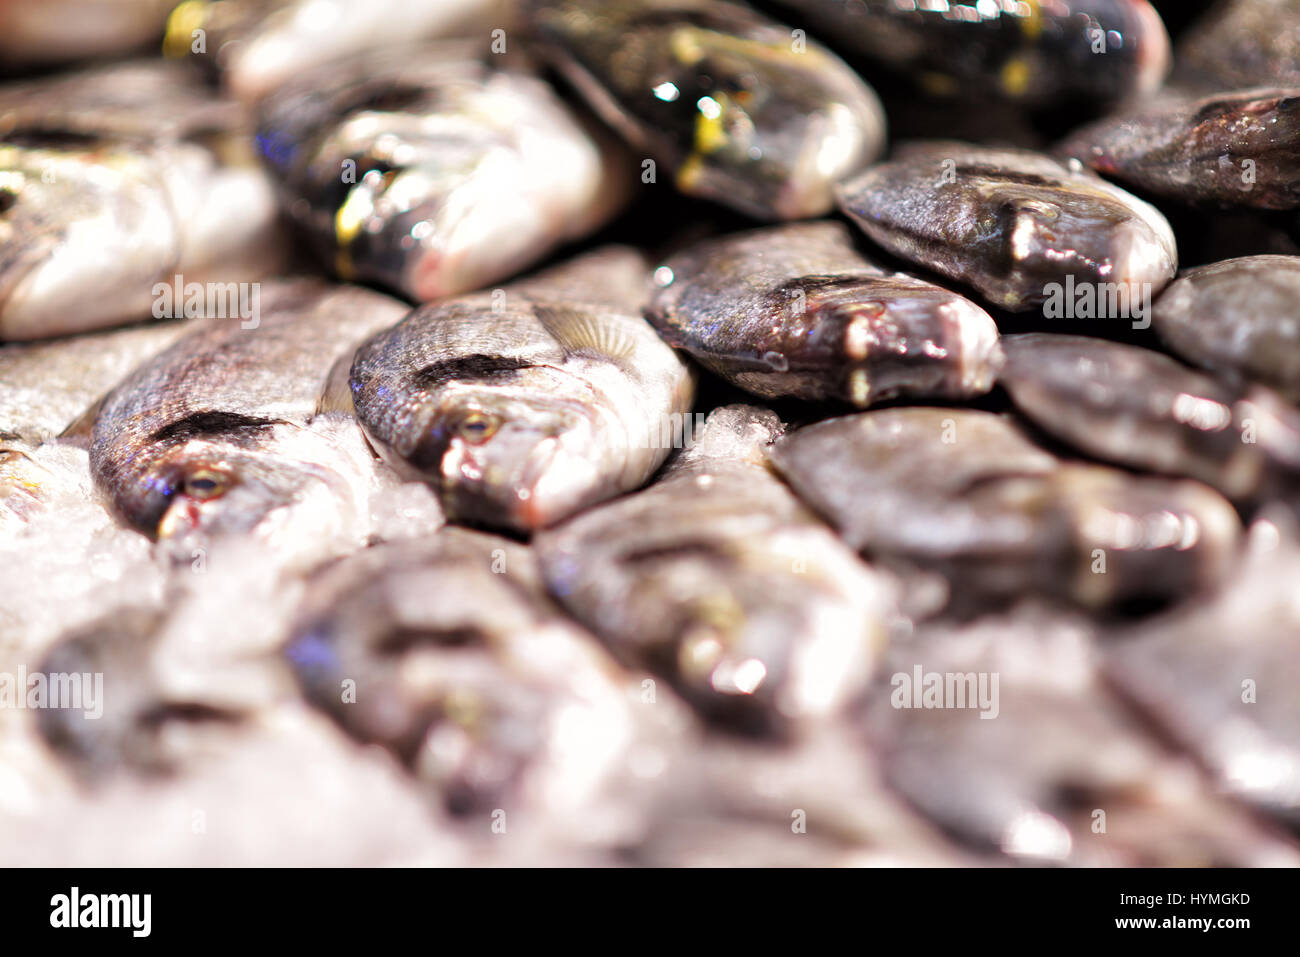 Seafood on ice at the fish market Stock Photo